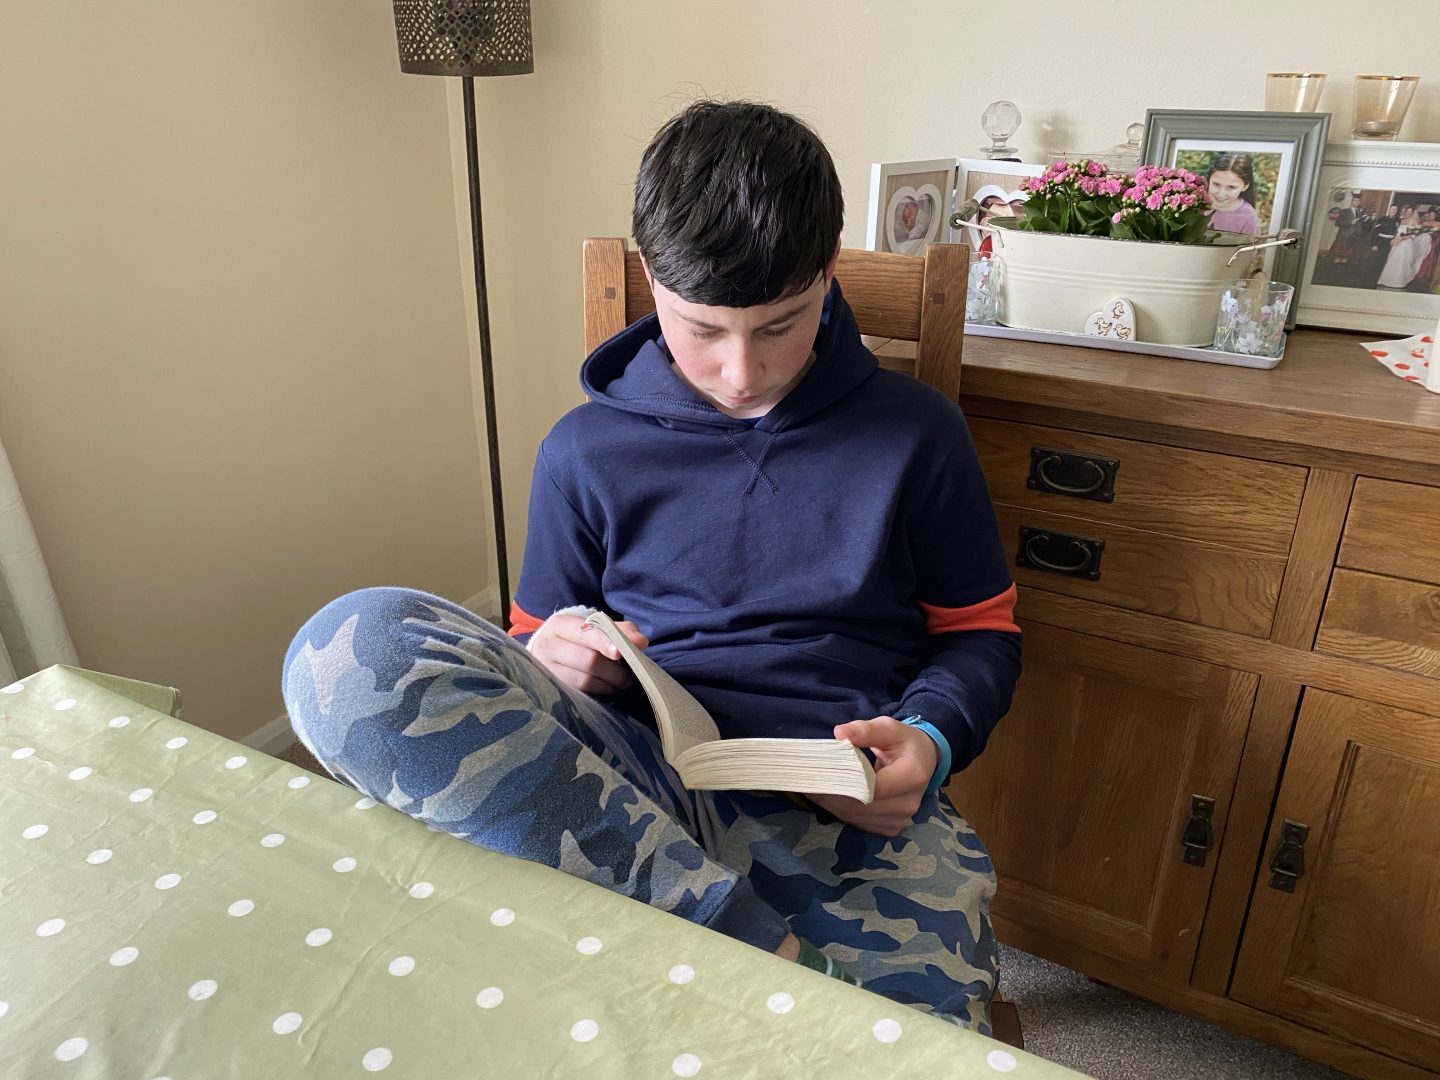 A boy reading quietly